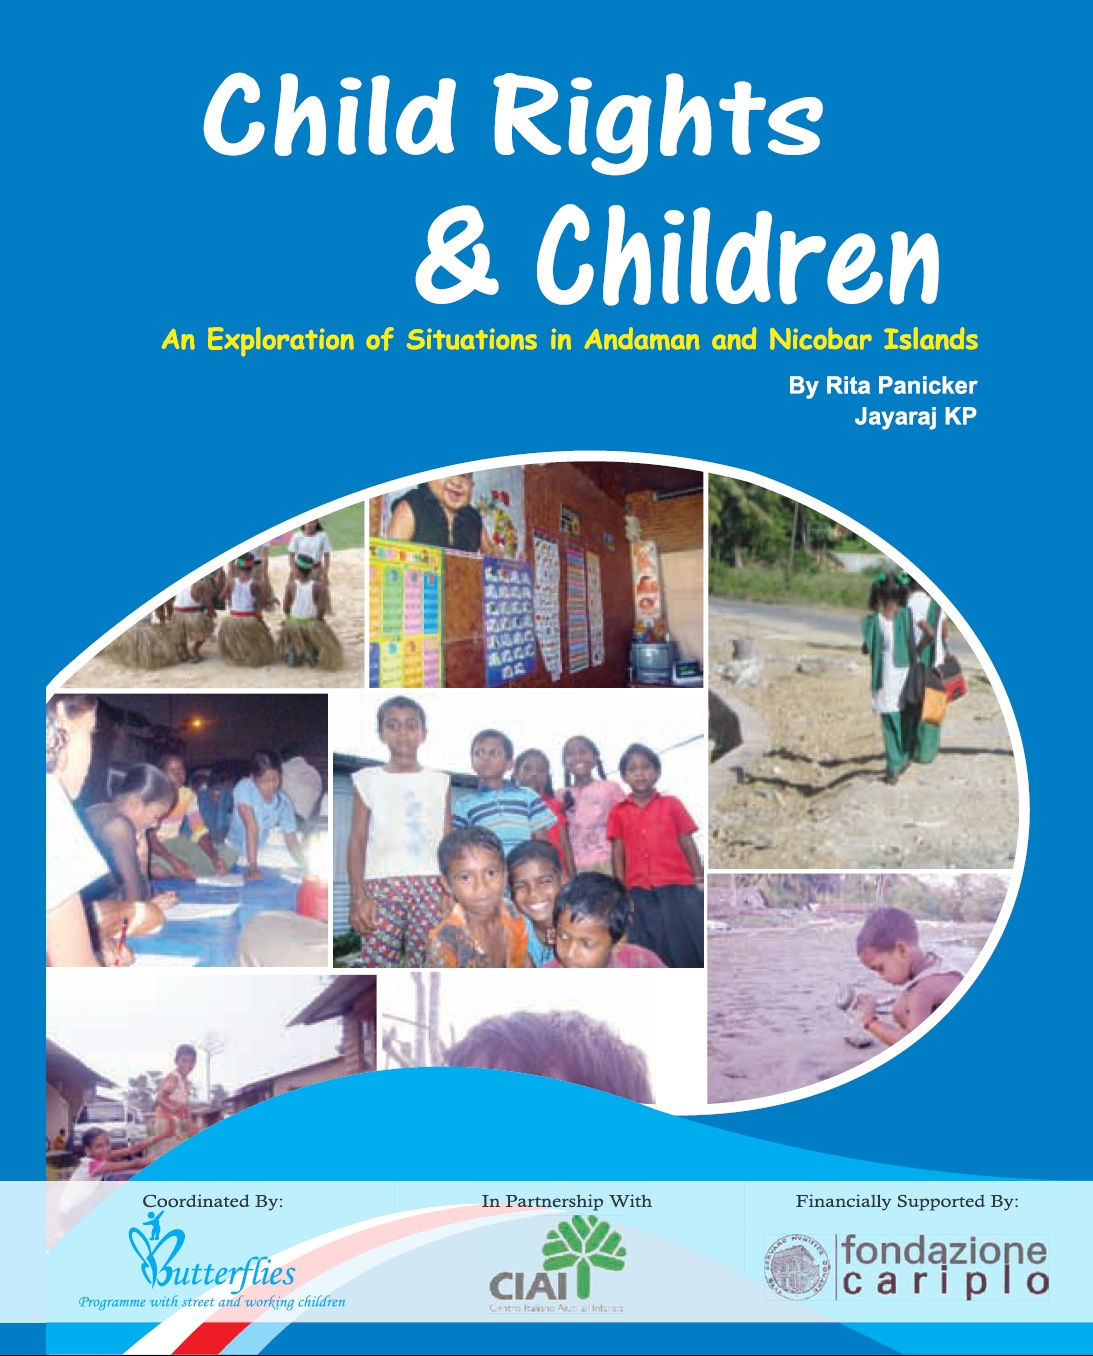 Child Rights & Children